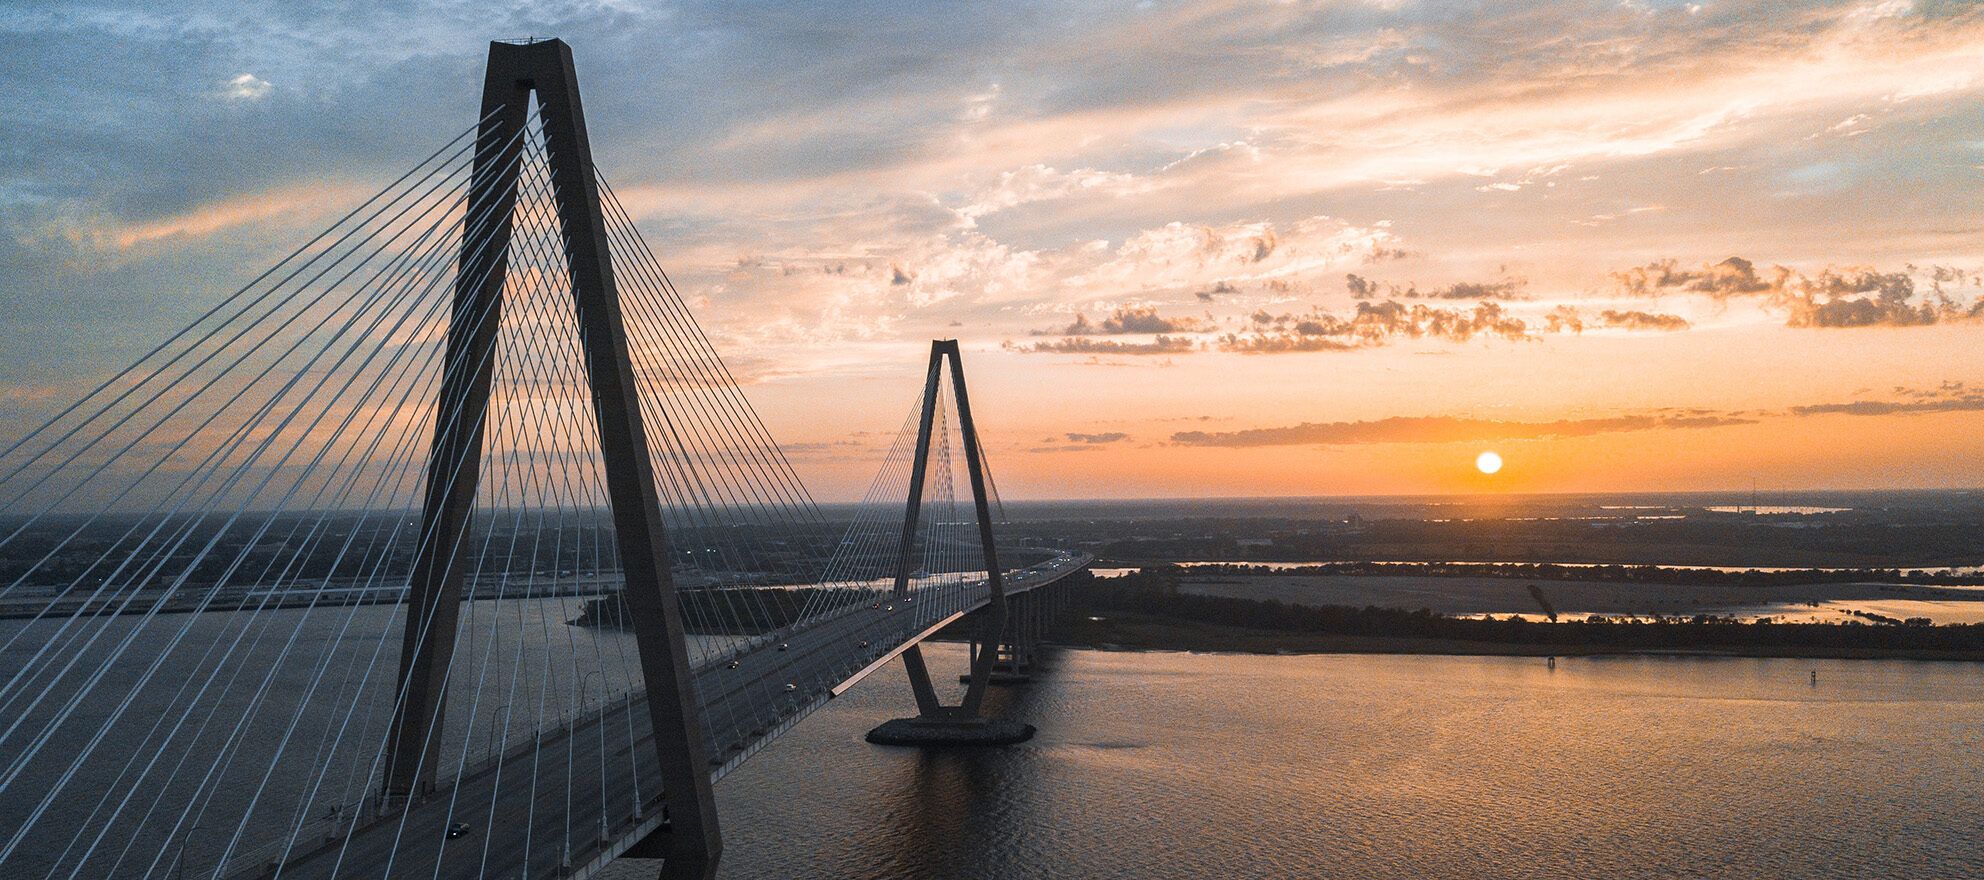 Move over New York, here comes Charleston